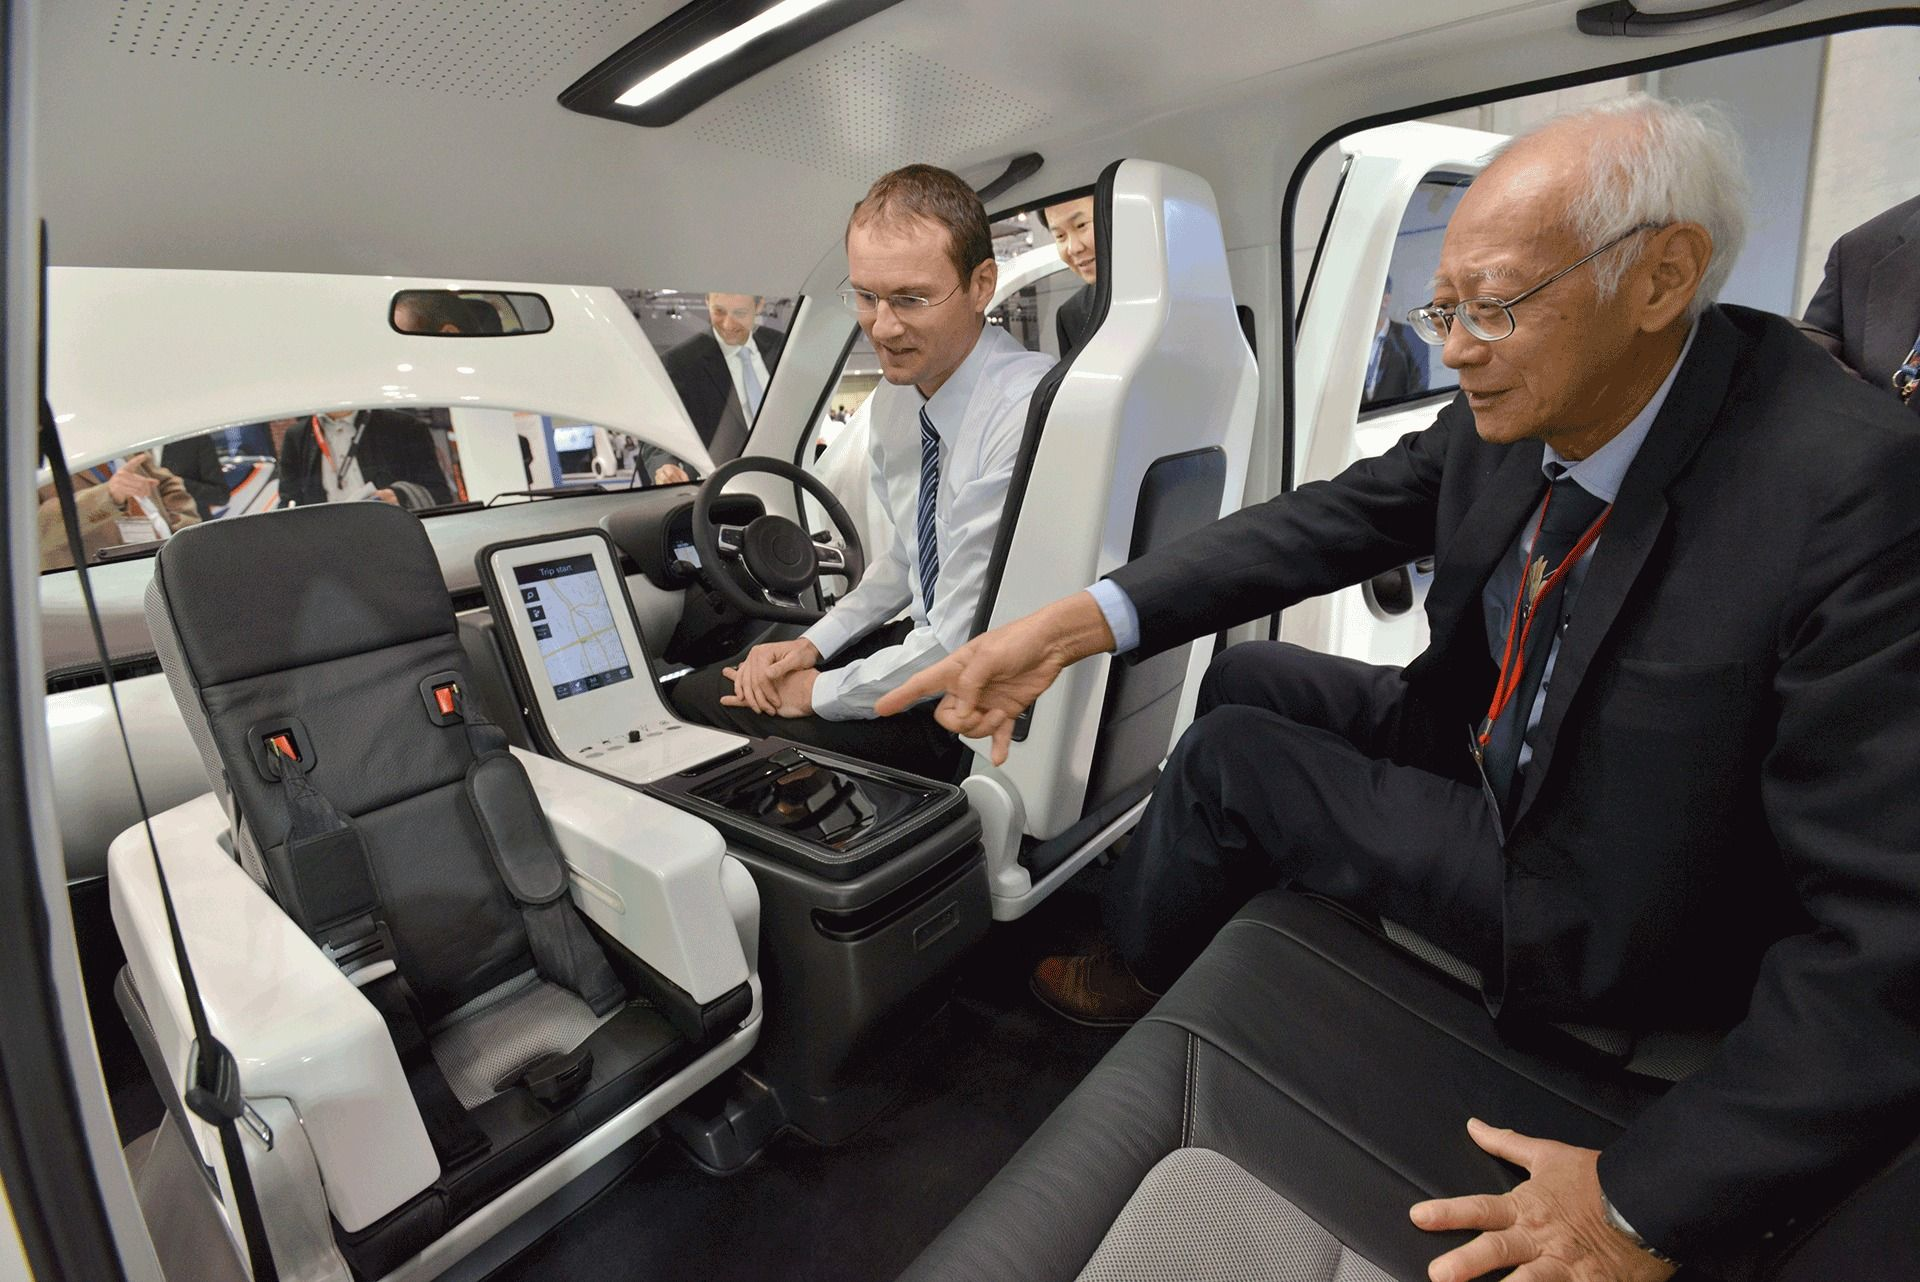 Eva taxi / Tum Create: a collaboration between Technische Universität München (TUM) in Germany and Nanyang Technological University (NTU) in Singapore